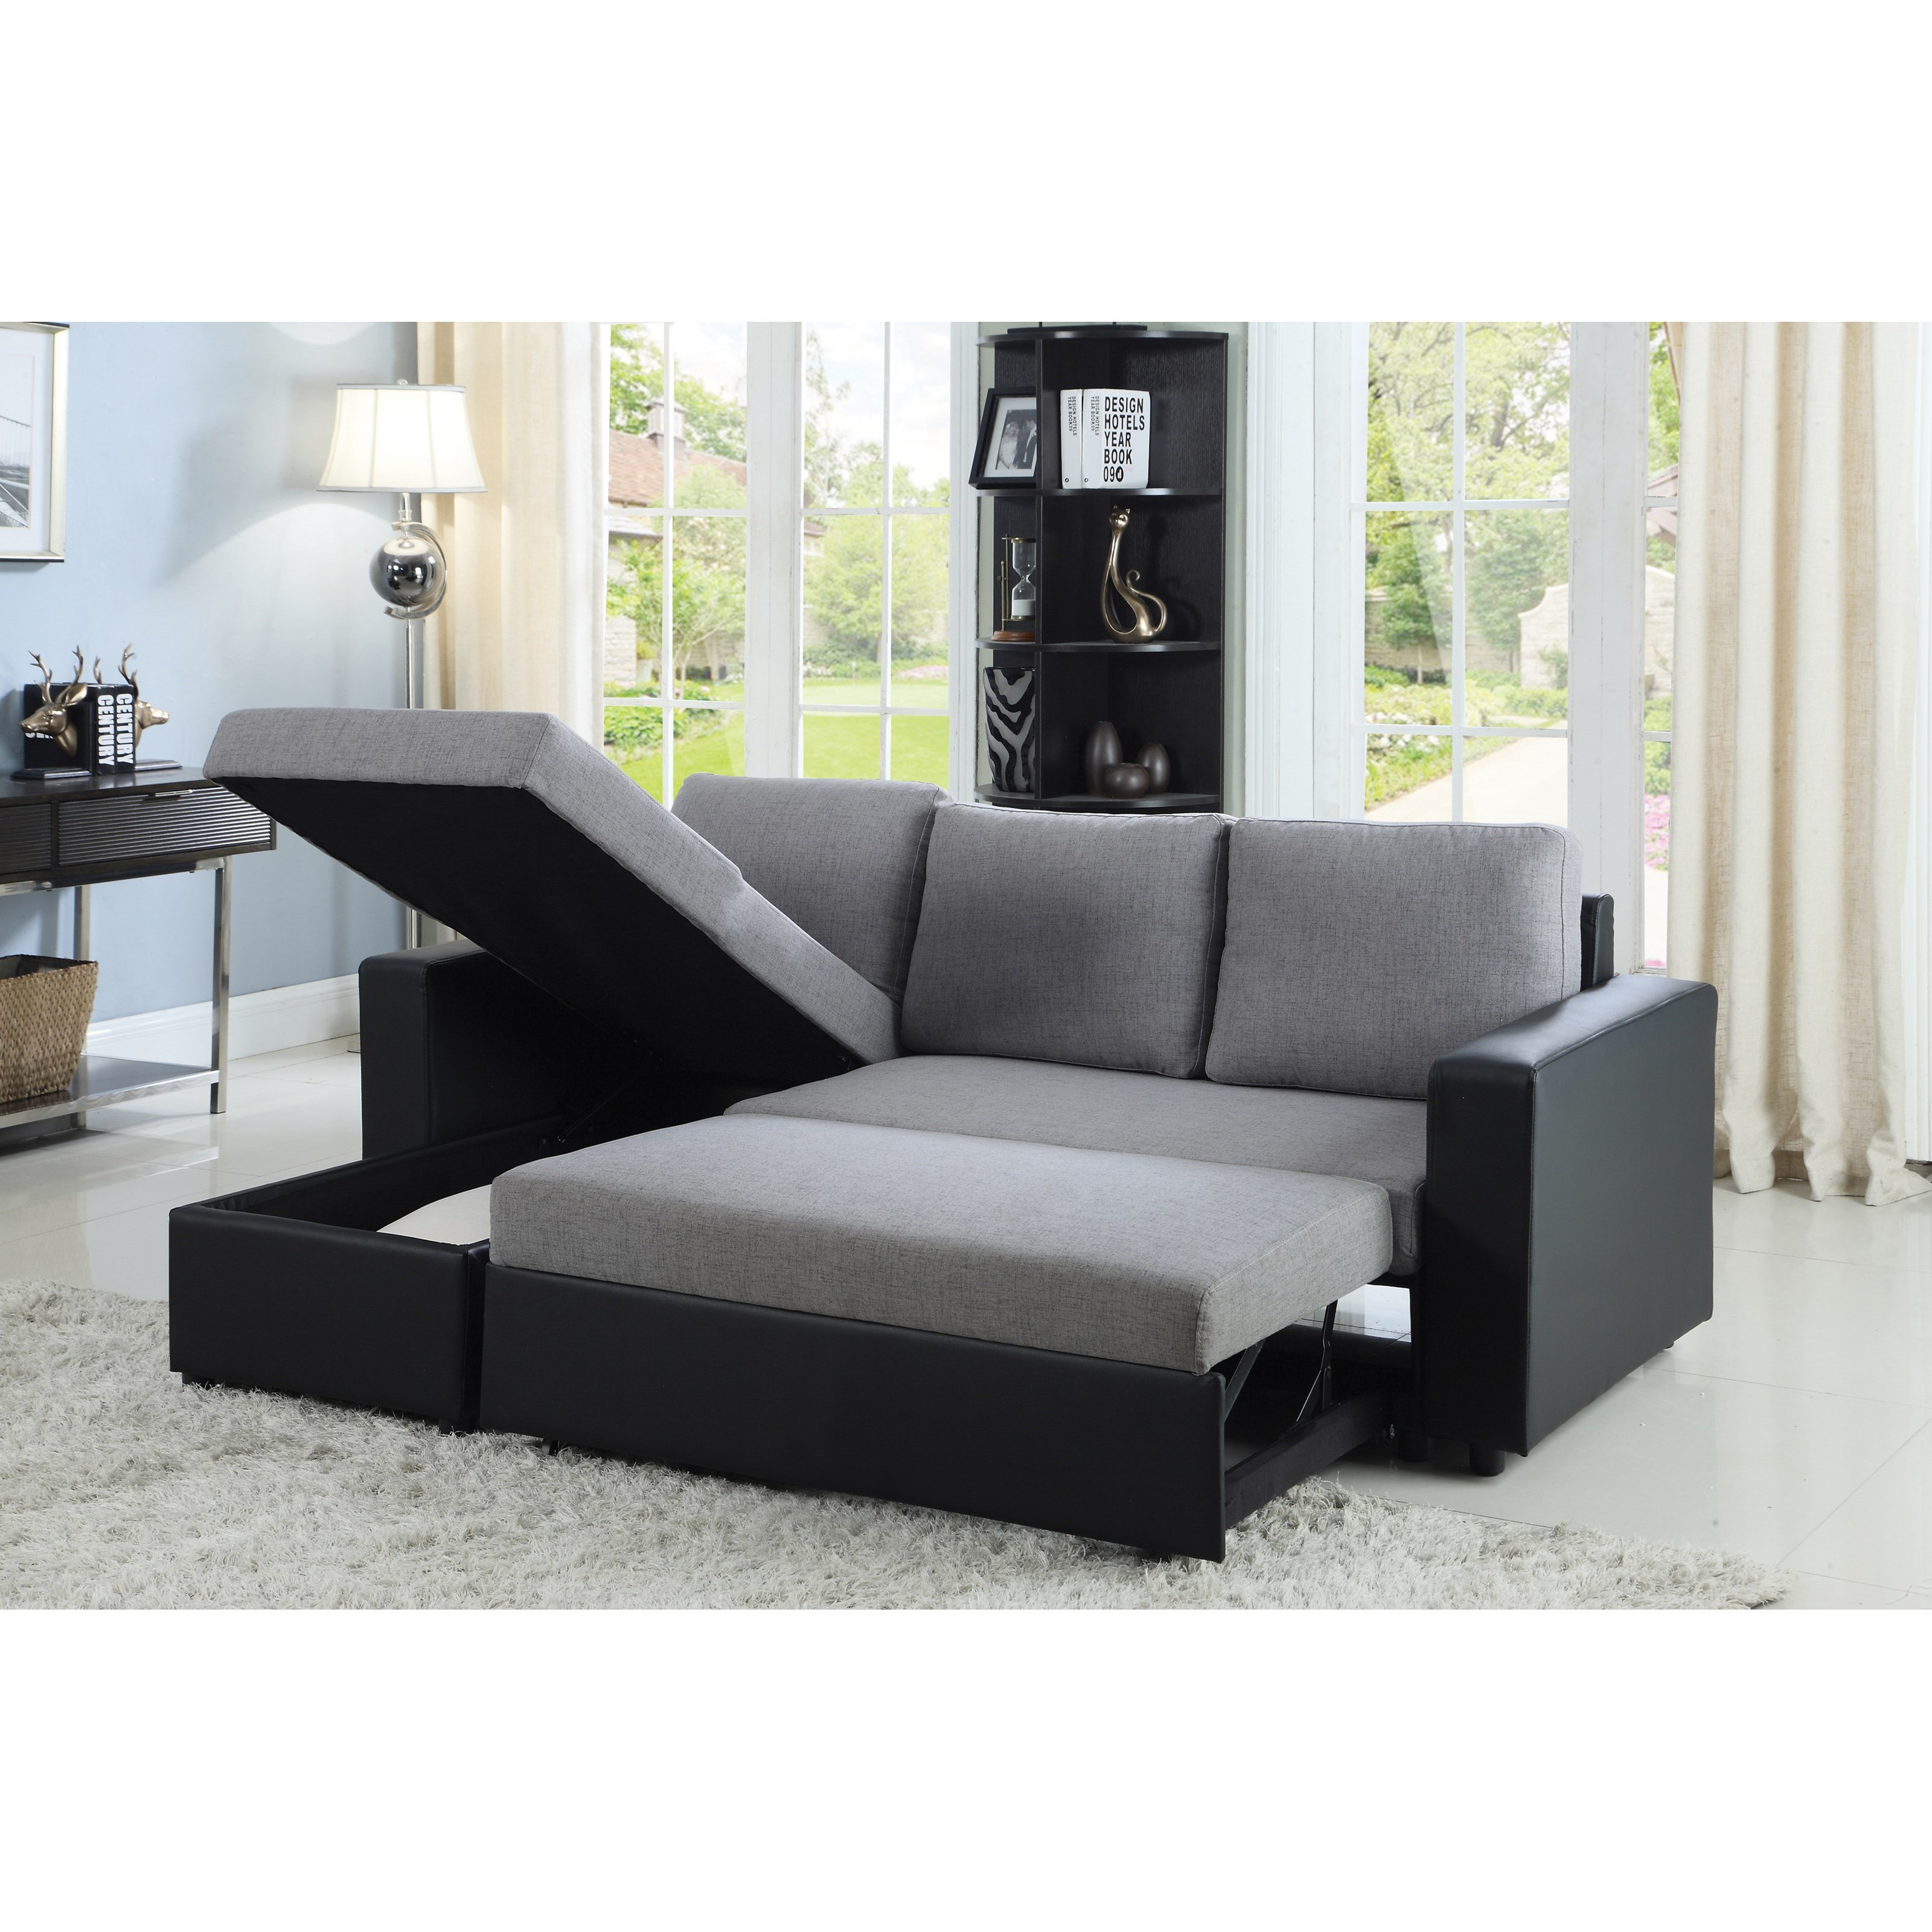 Sectional (grey/black)